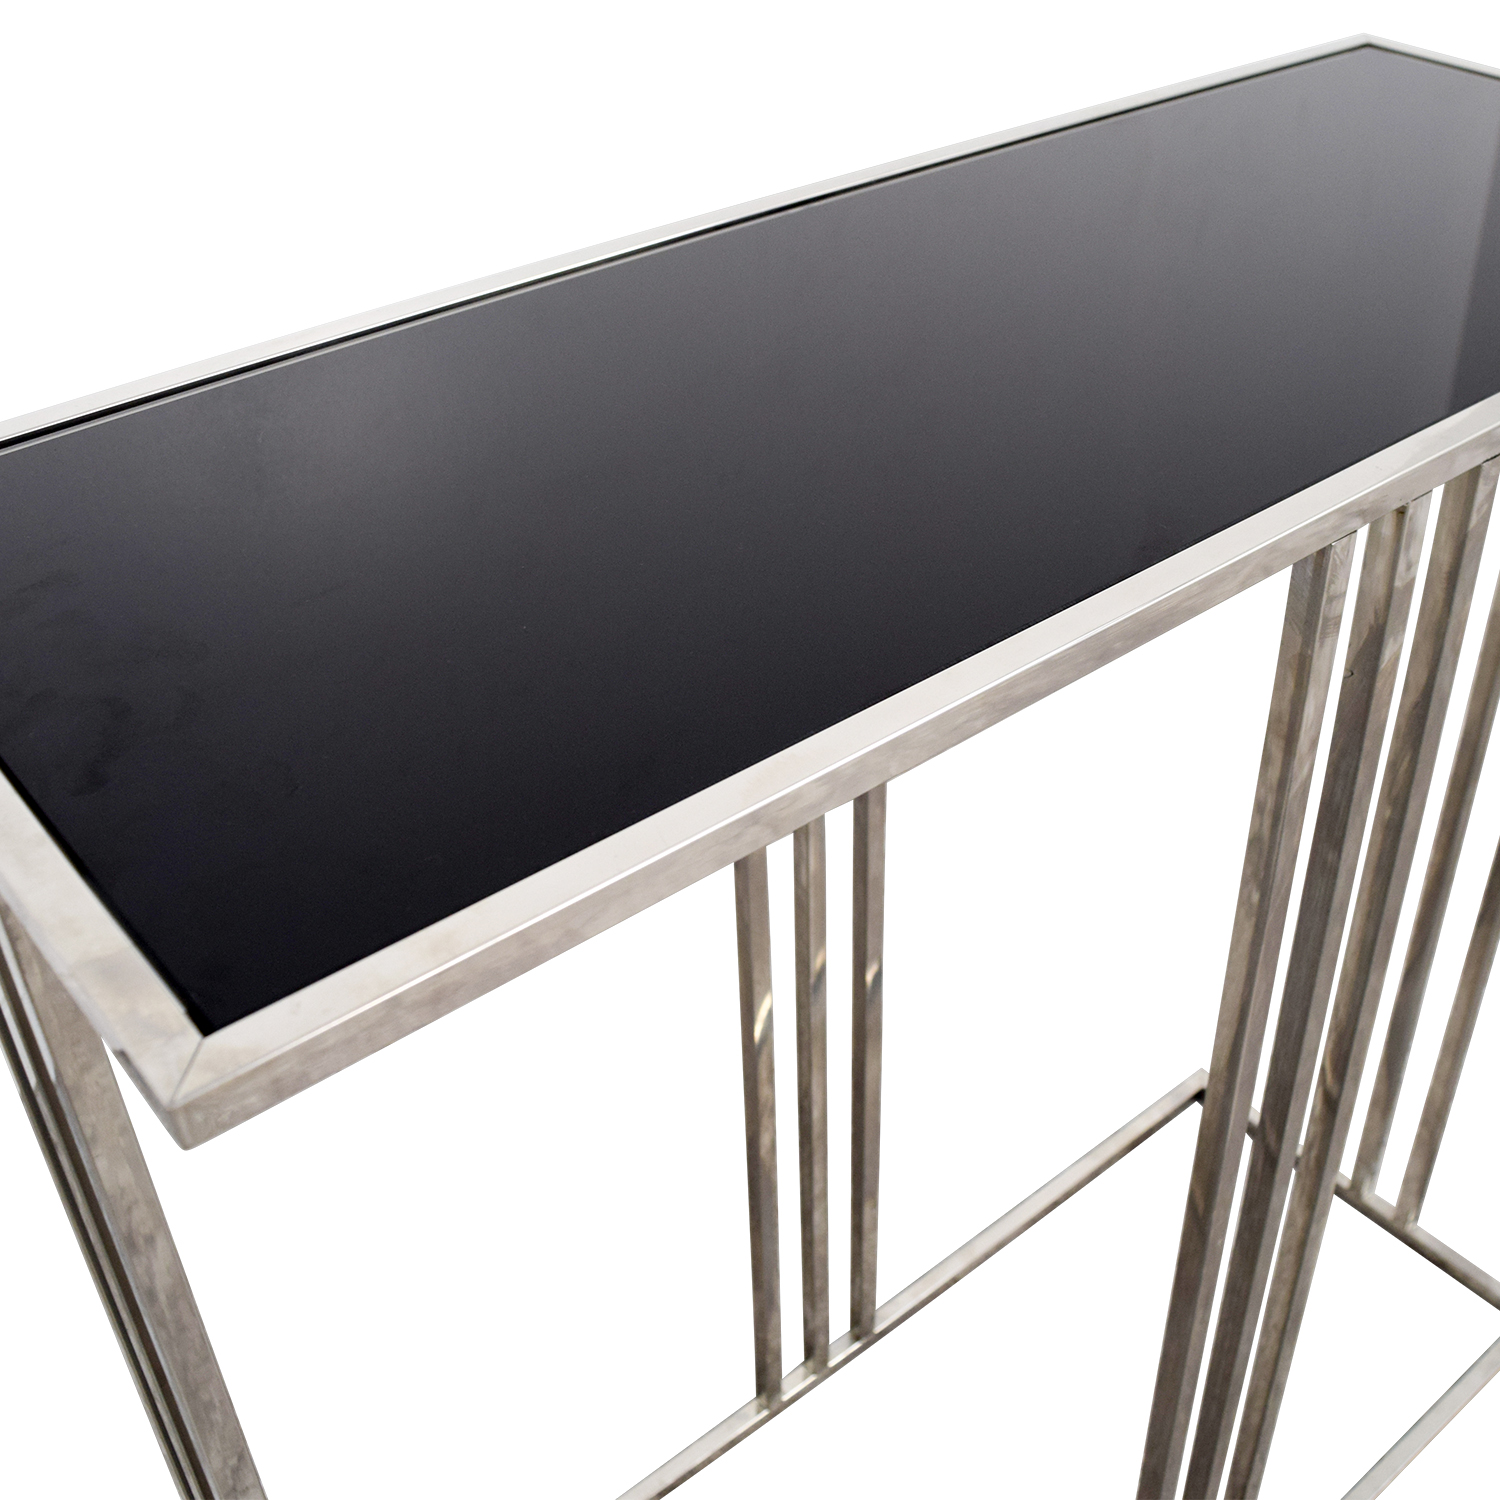 HomeGoods HomeGoods Black and Silver Entryway Table discount